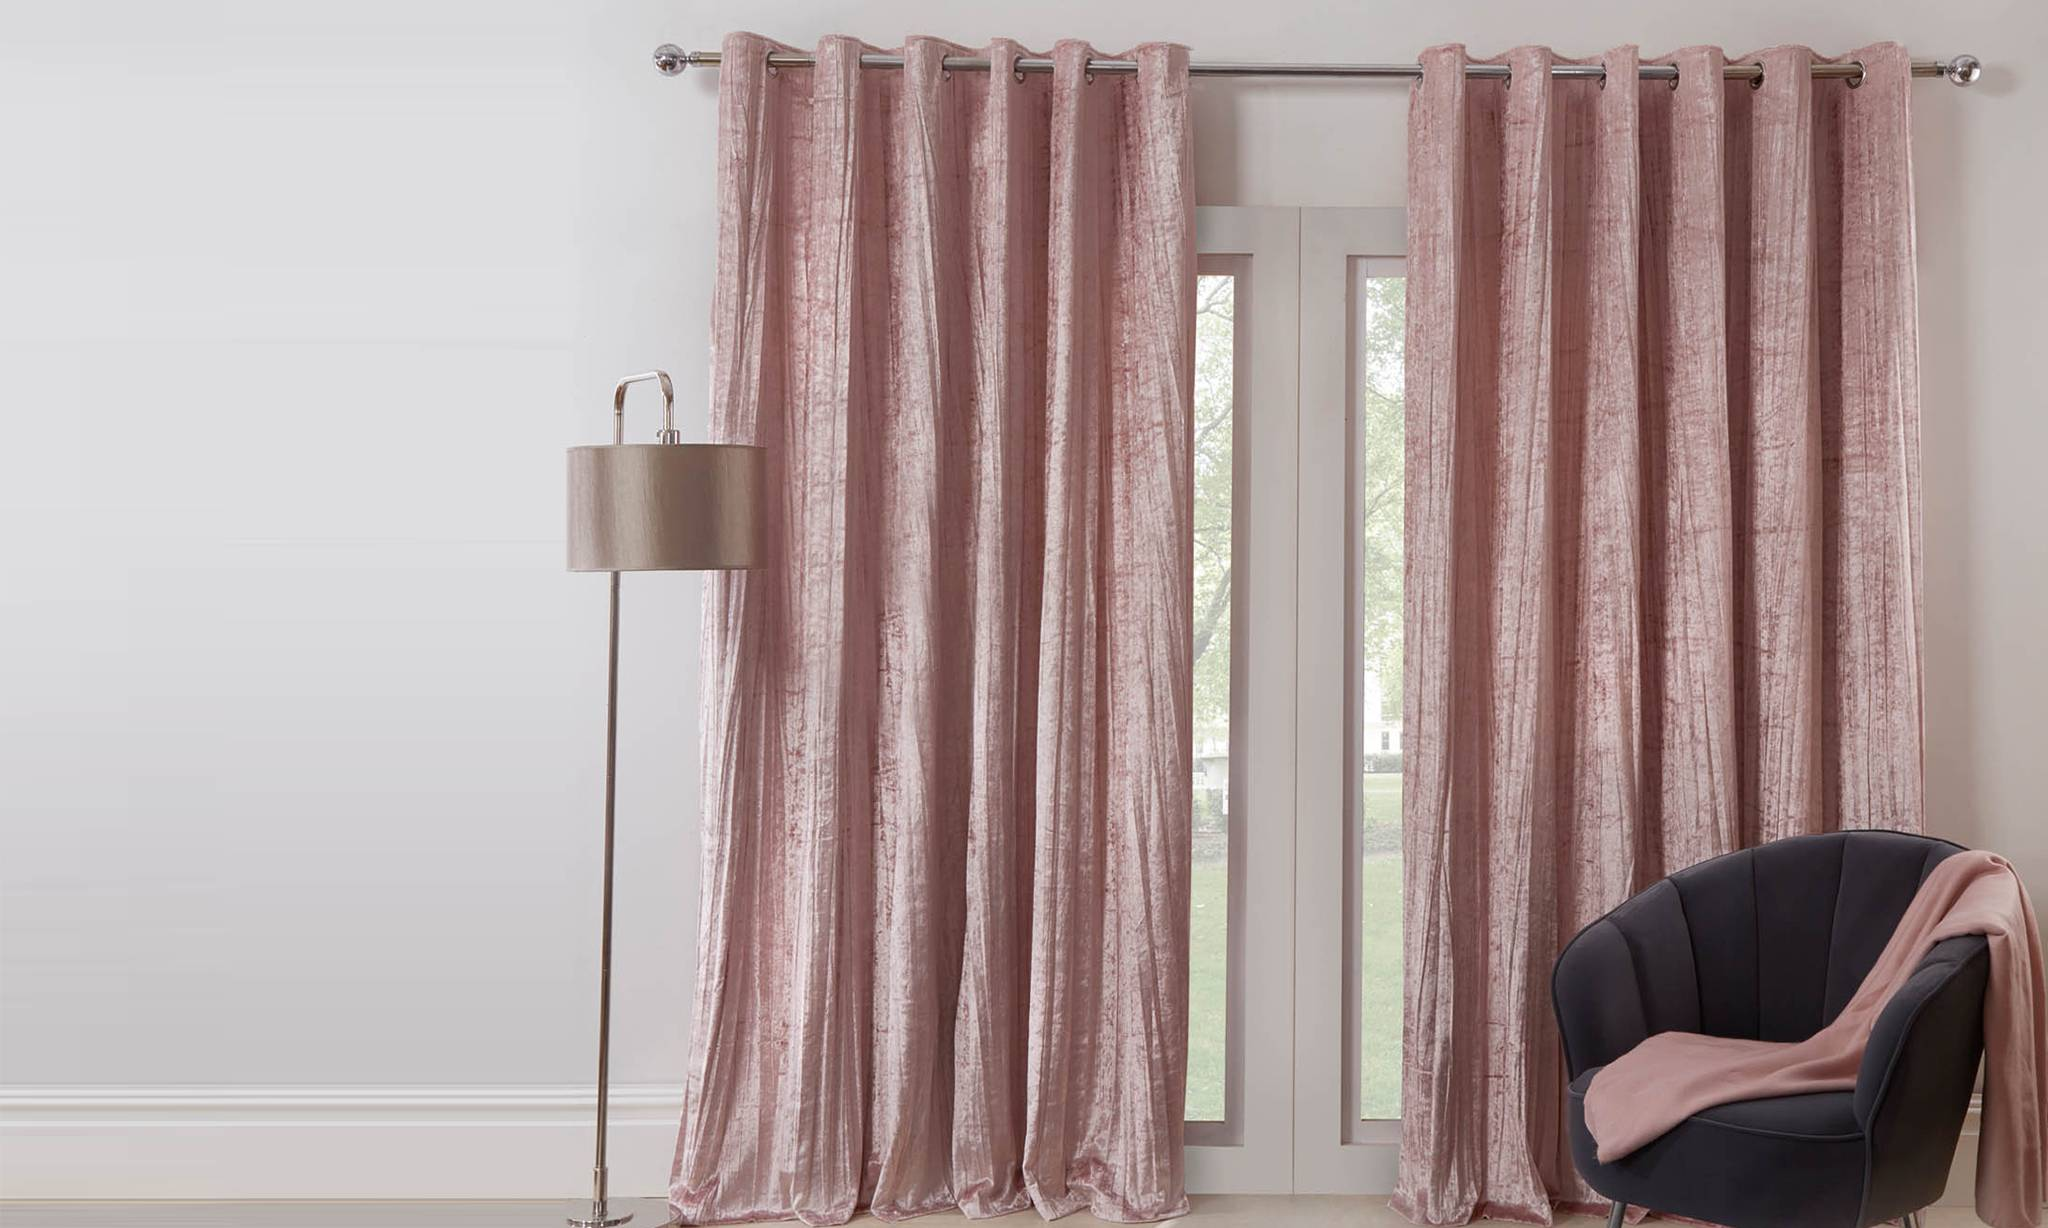 scion nuevo lined curtains blush charcoal 168x183cm